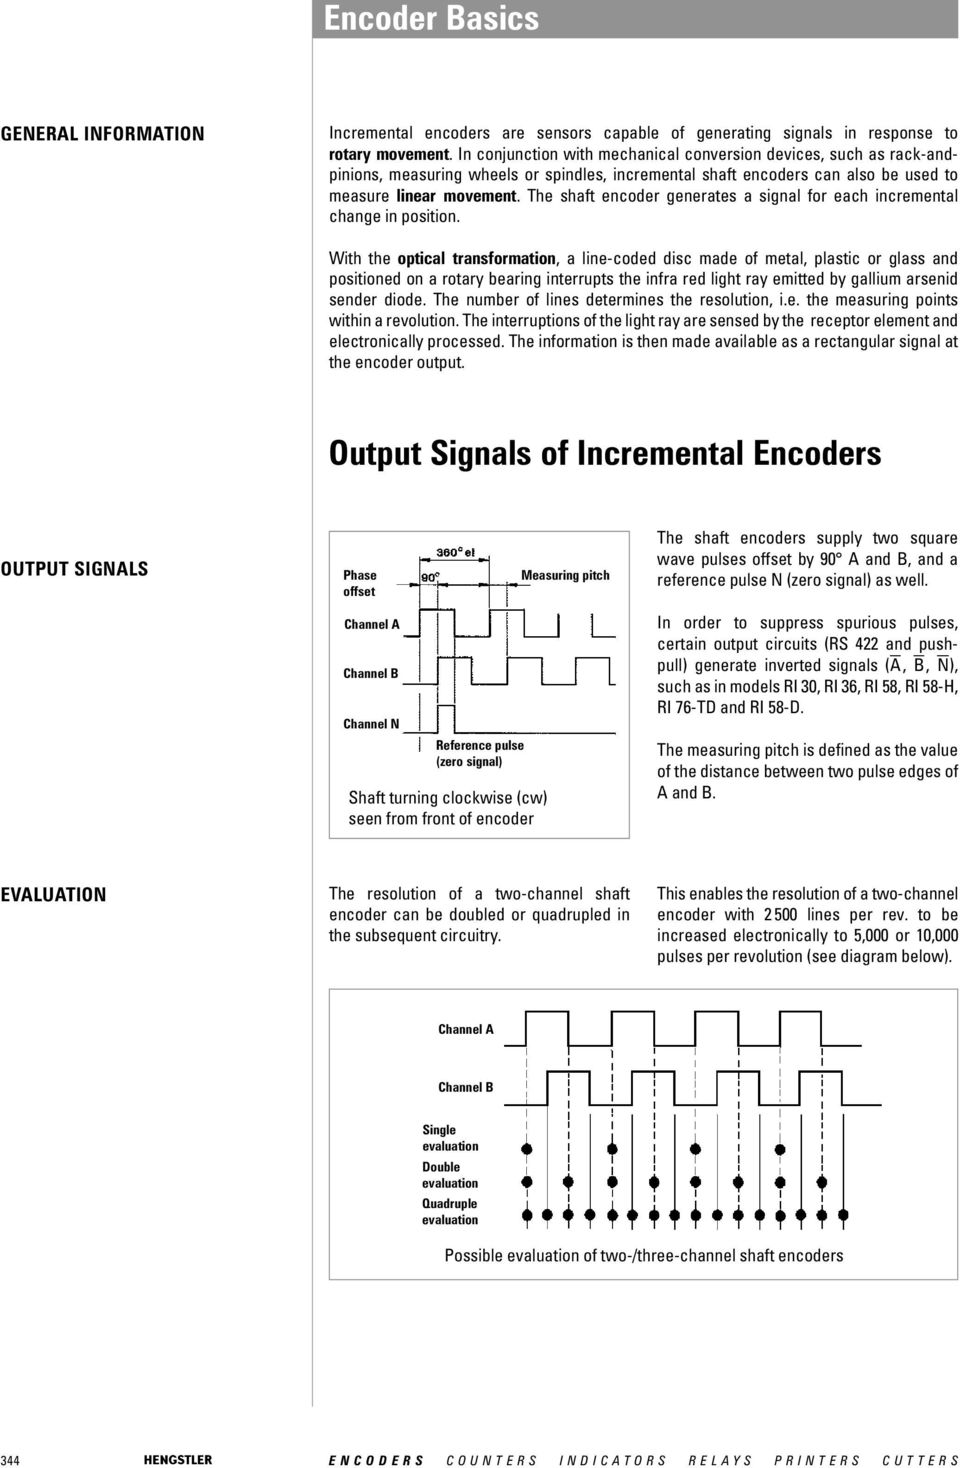 Encoder Basics  Measuring pitch  Channel N Reference pulse